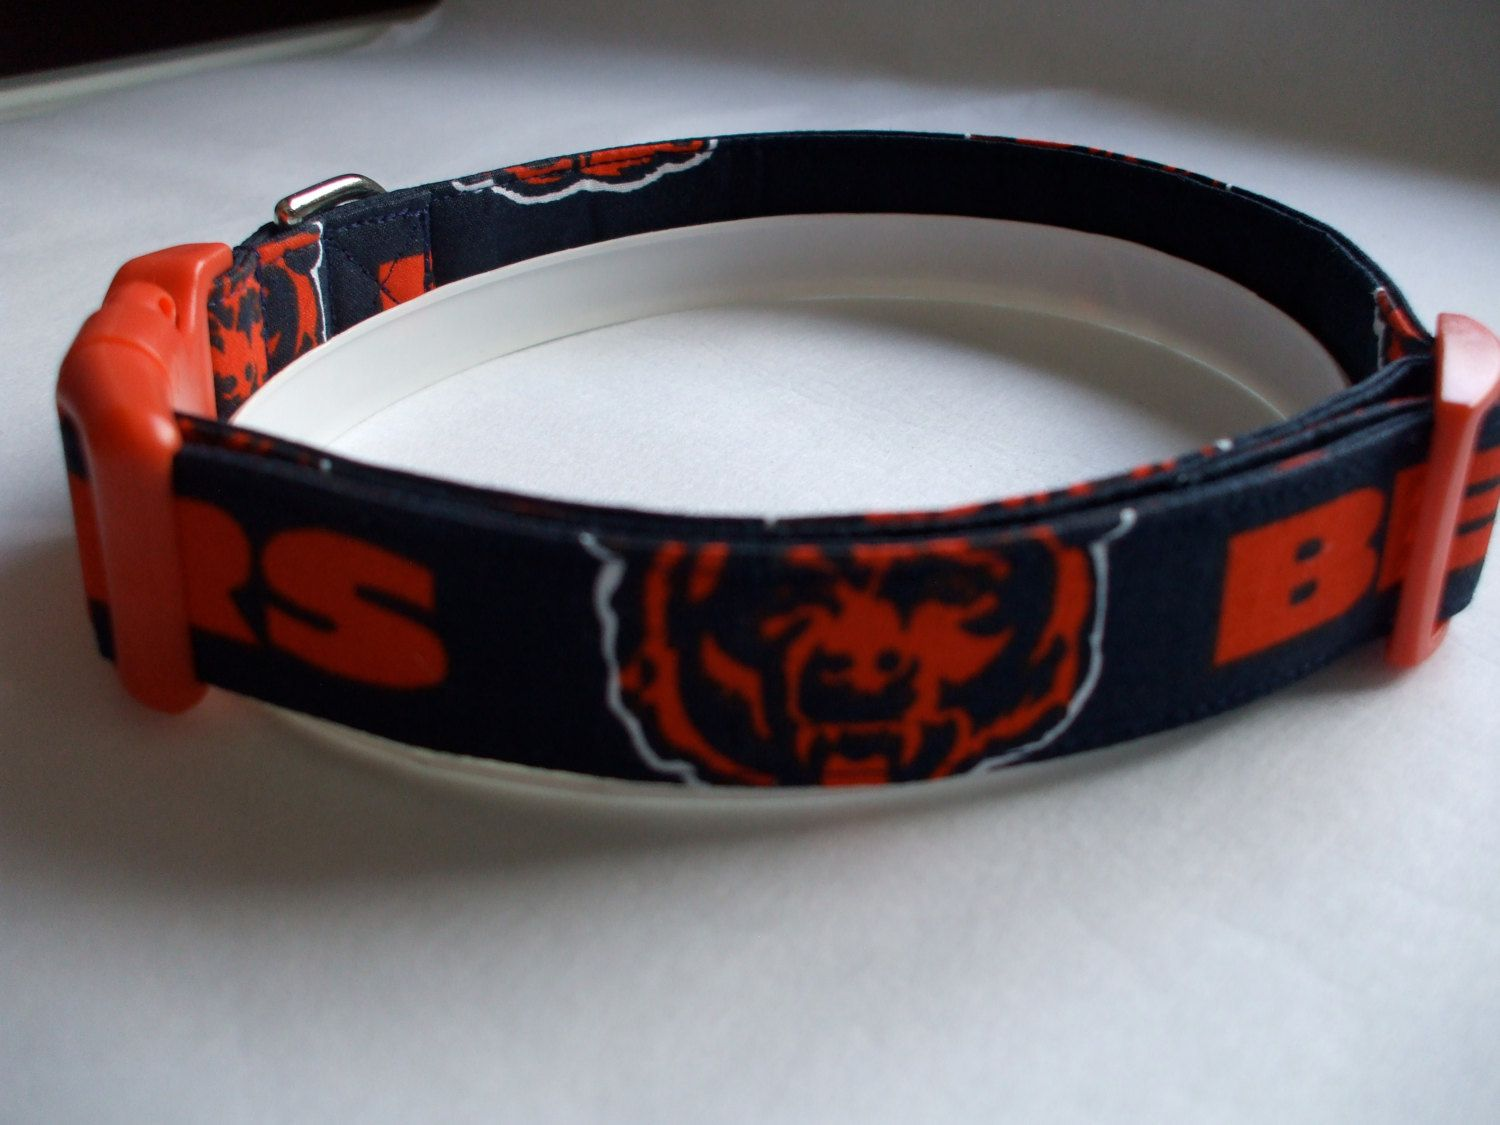 Handmade Cotton Dog Collar - Chicago Bears Fabric #2 by WalkingTheDog on Etsy